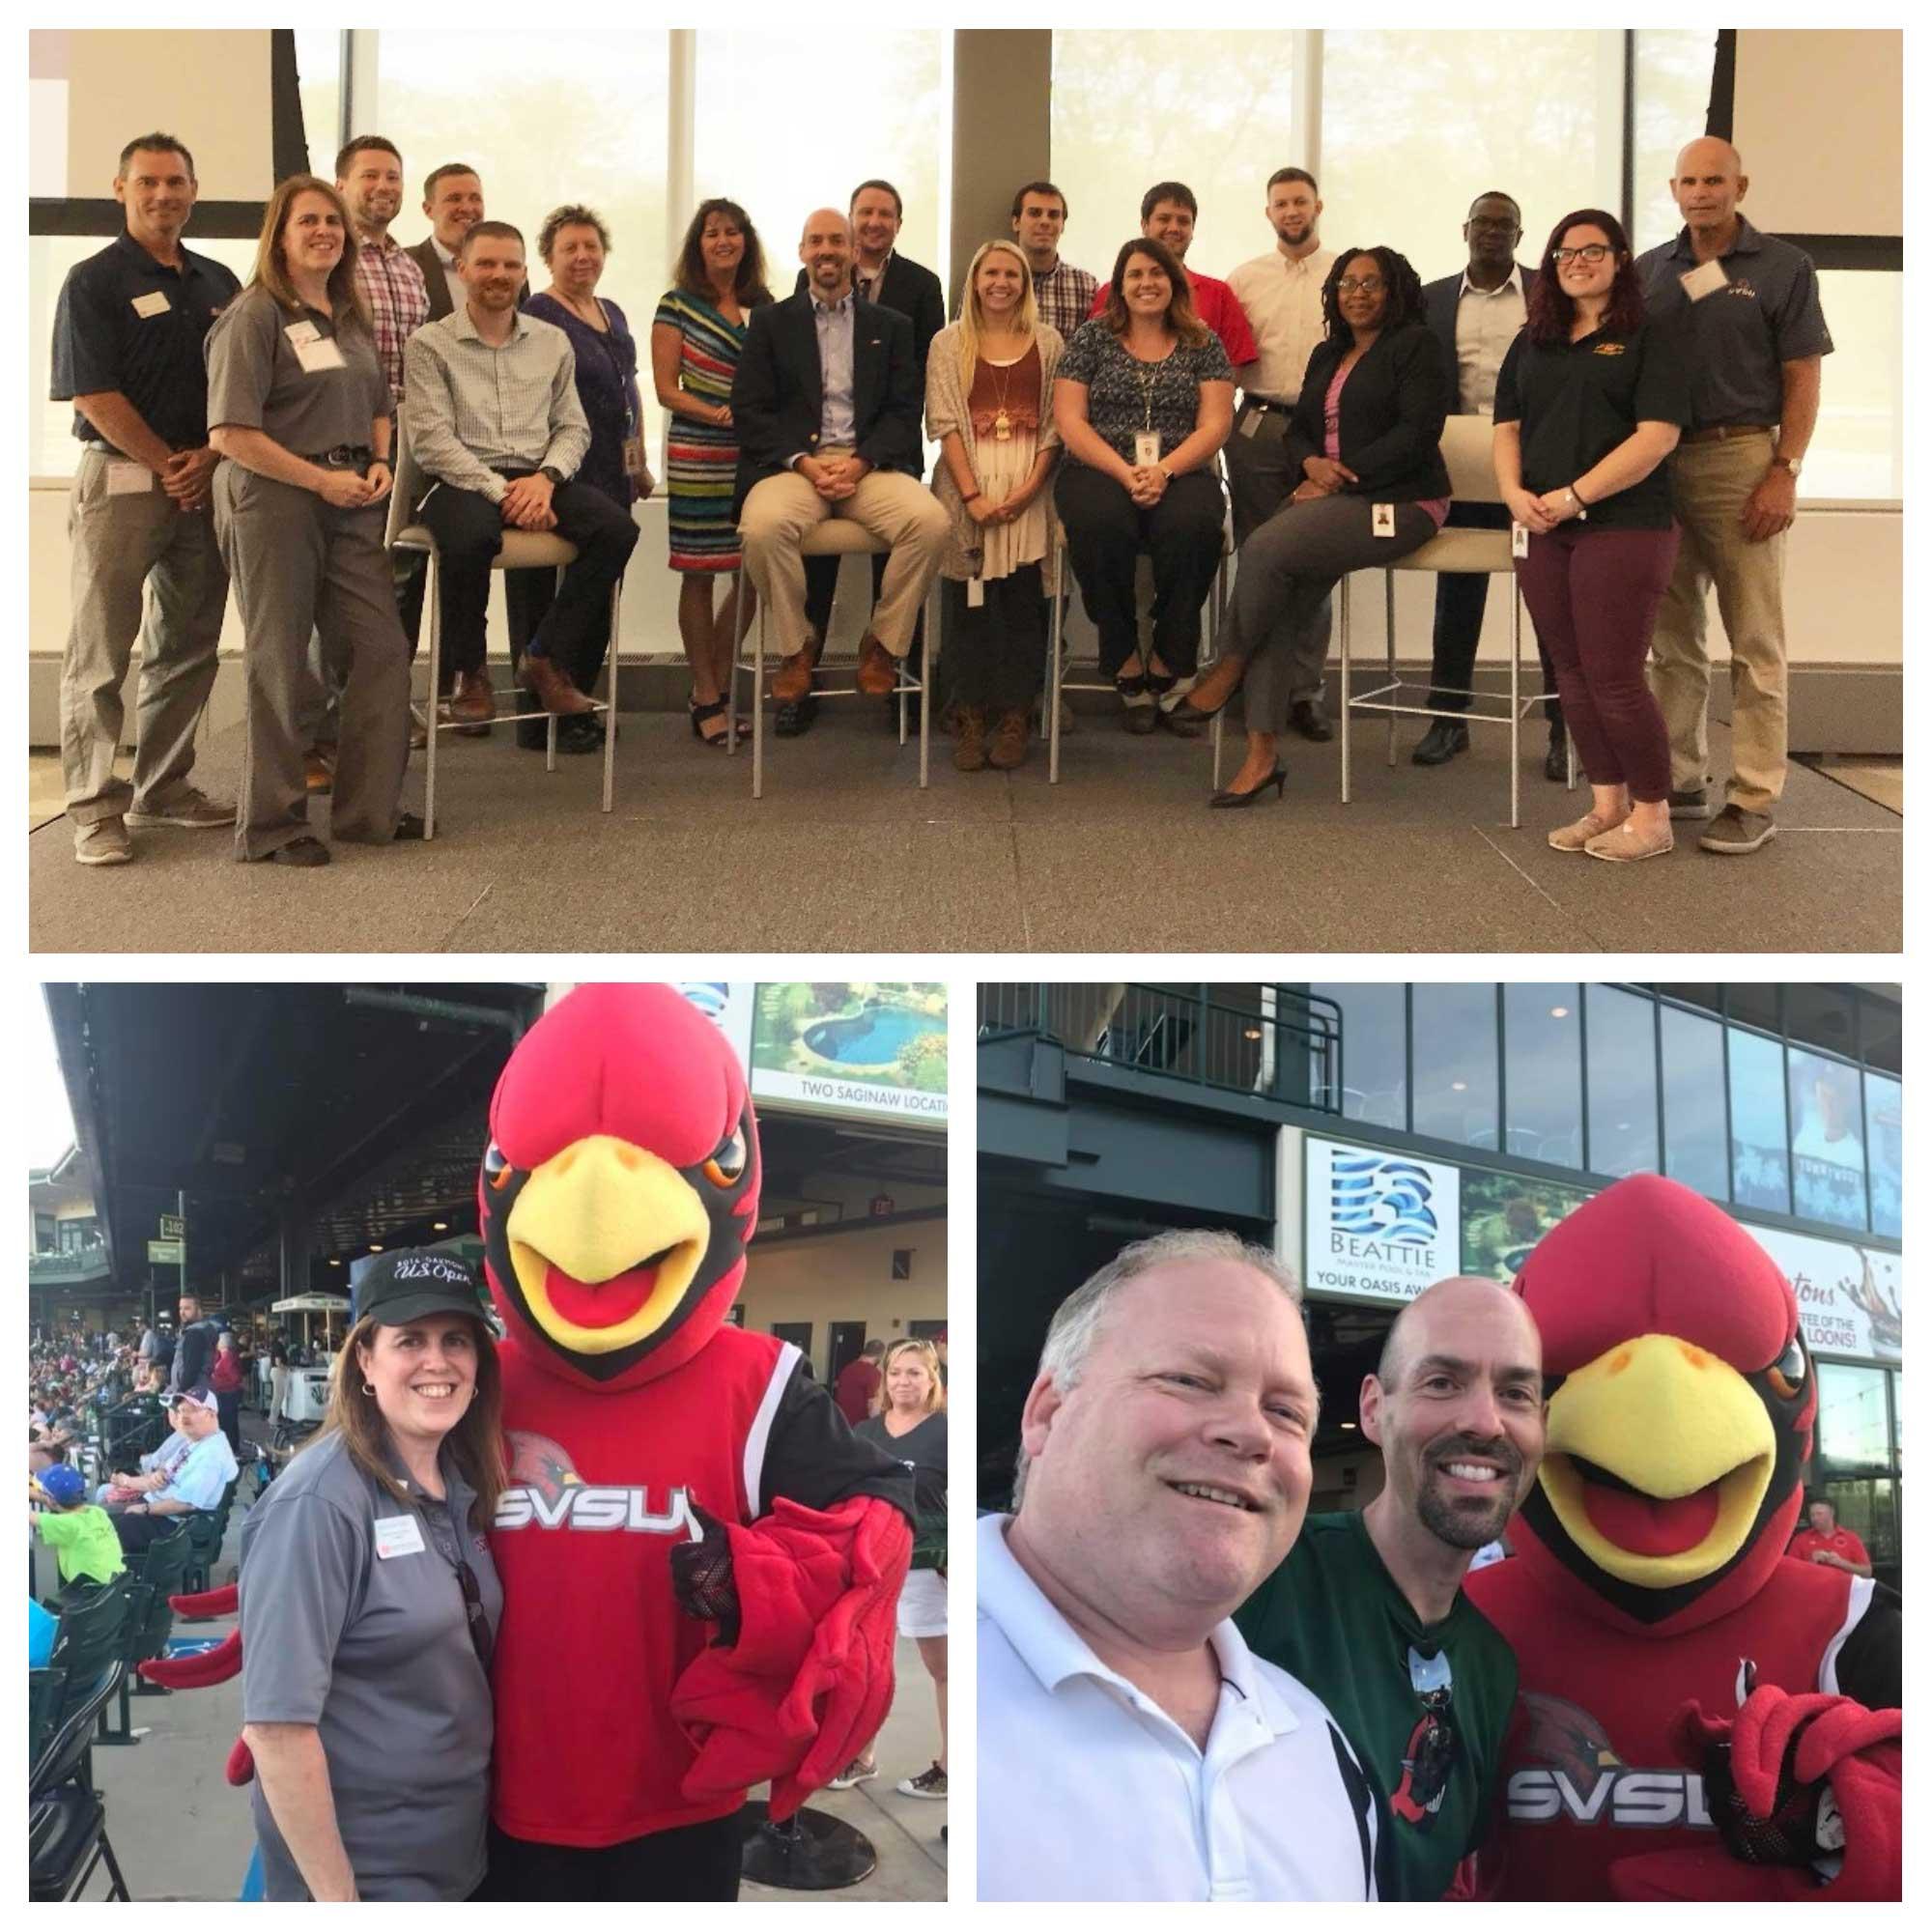 Top: a group of SVSU alumni and Dow employees. Bottom two: Two pictures at Loons baseball game